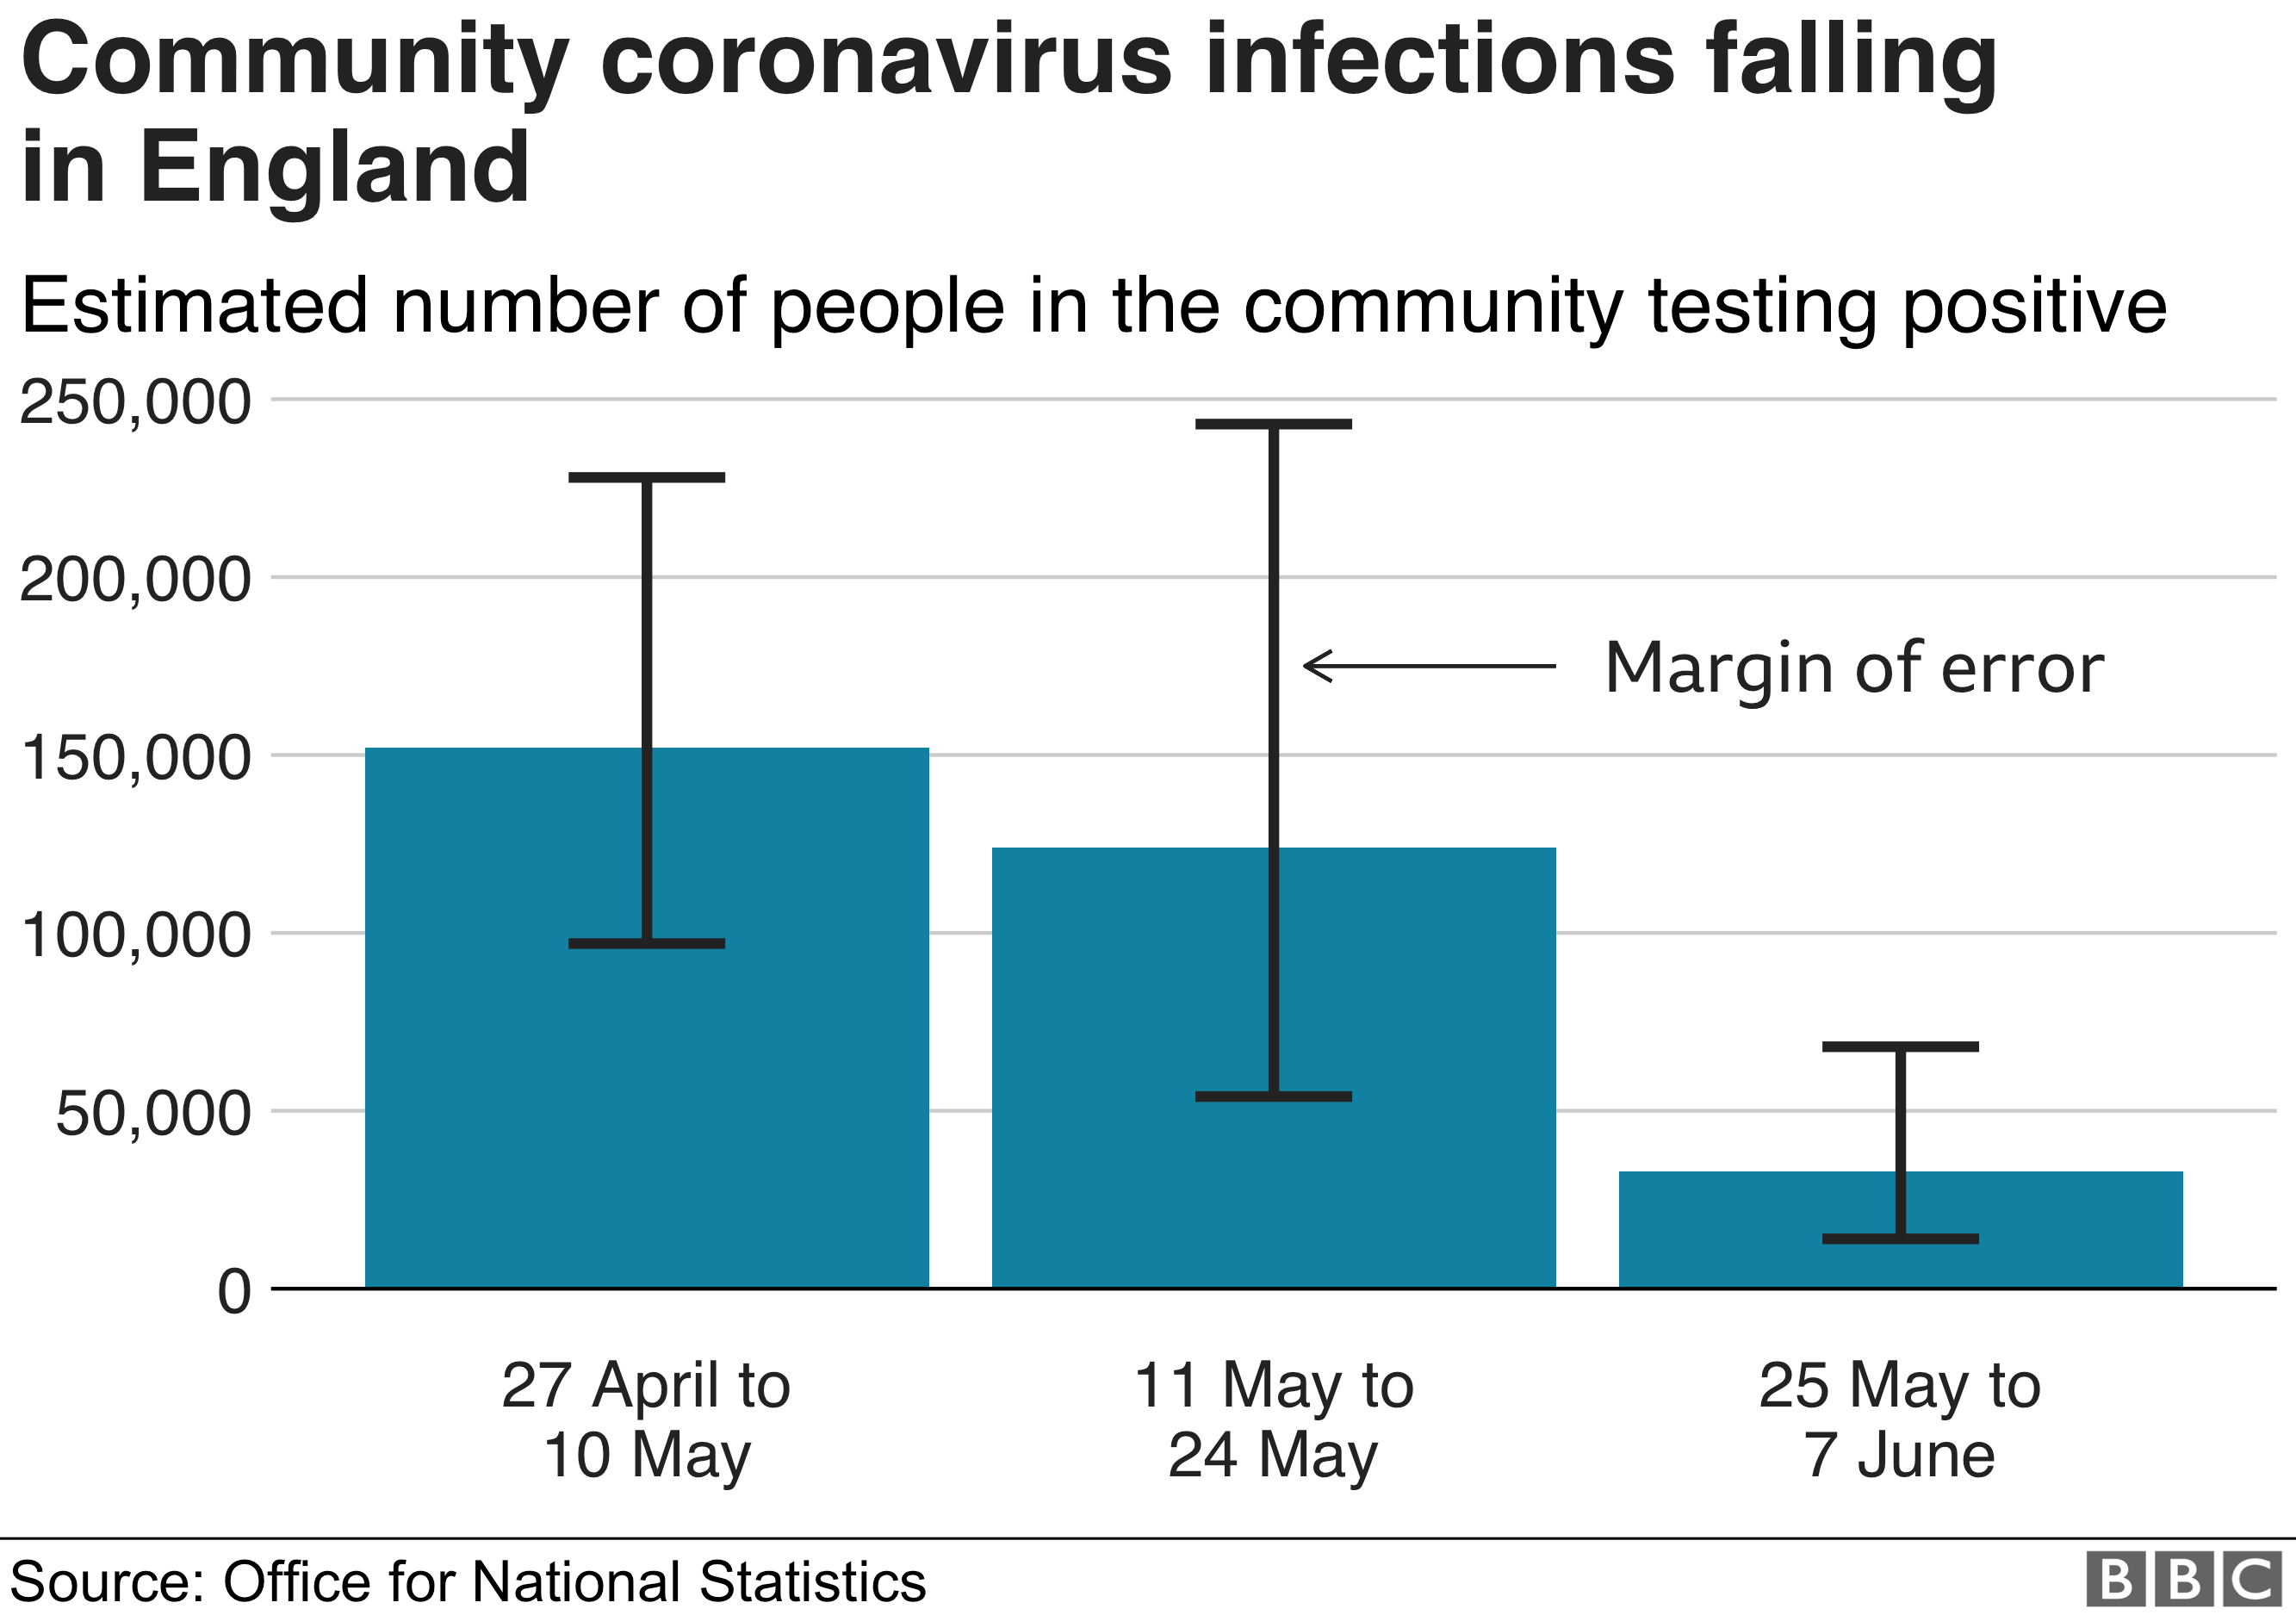 Community coronavirus infections falling in England